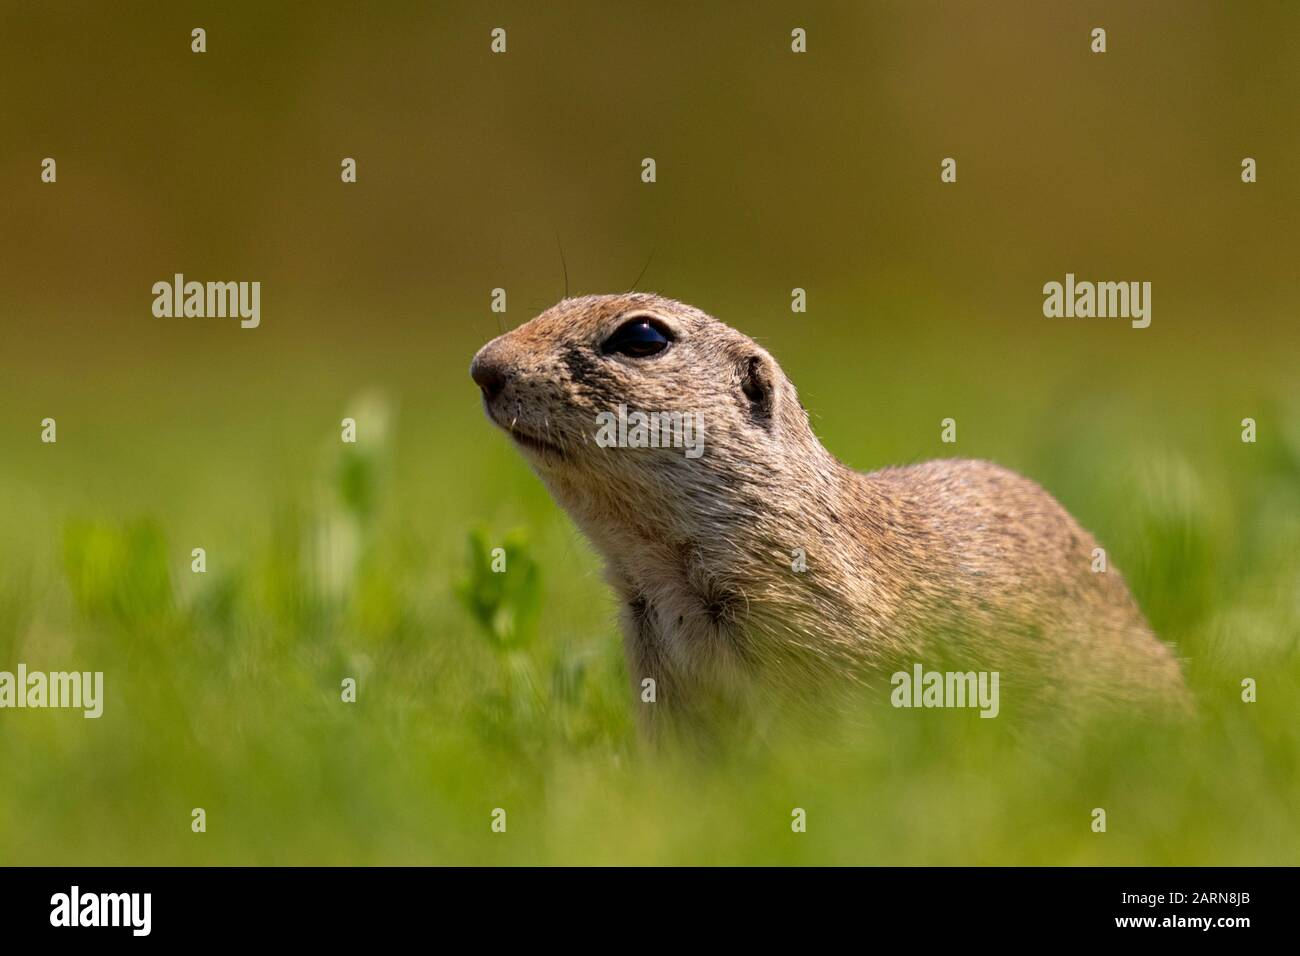 European ground squirrel, Spermophilus citellus on green grass, Kiskunsági Nemzeti national park, Hungary Stock Photo